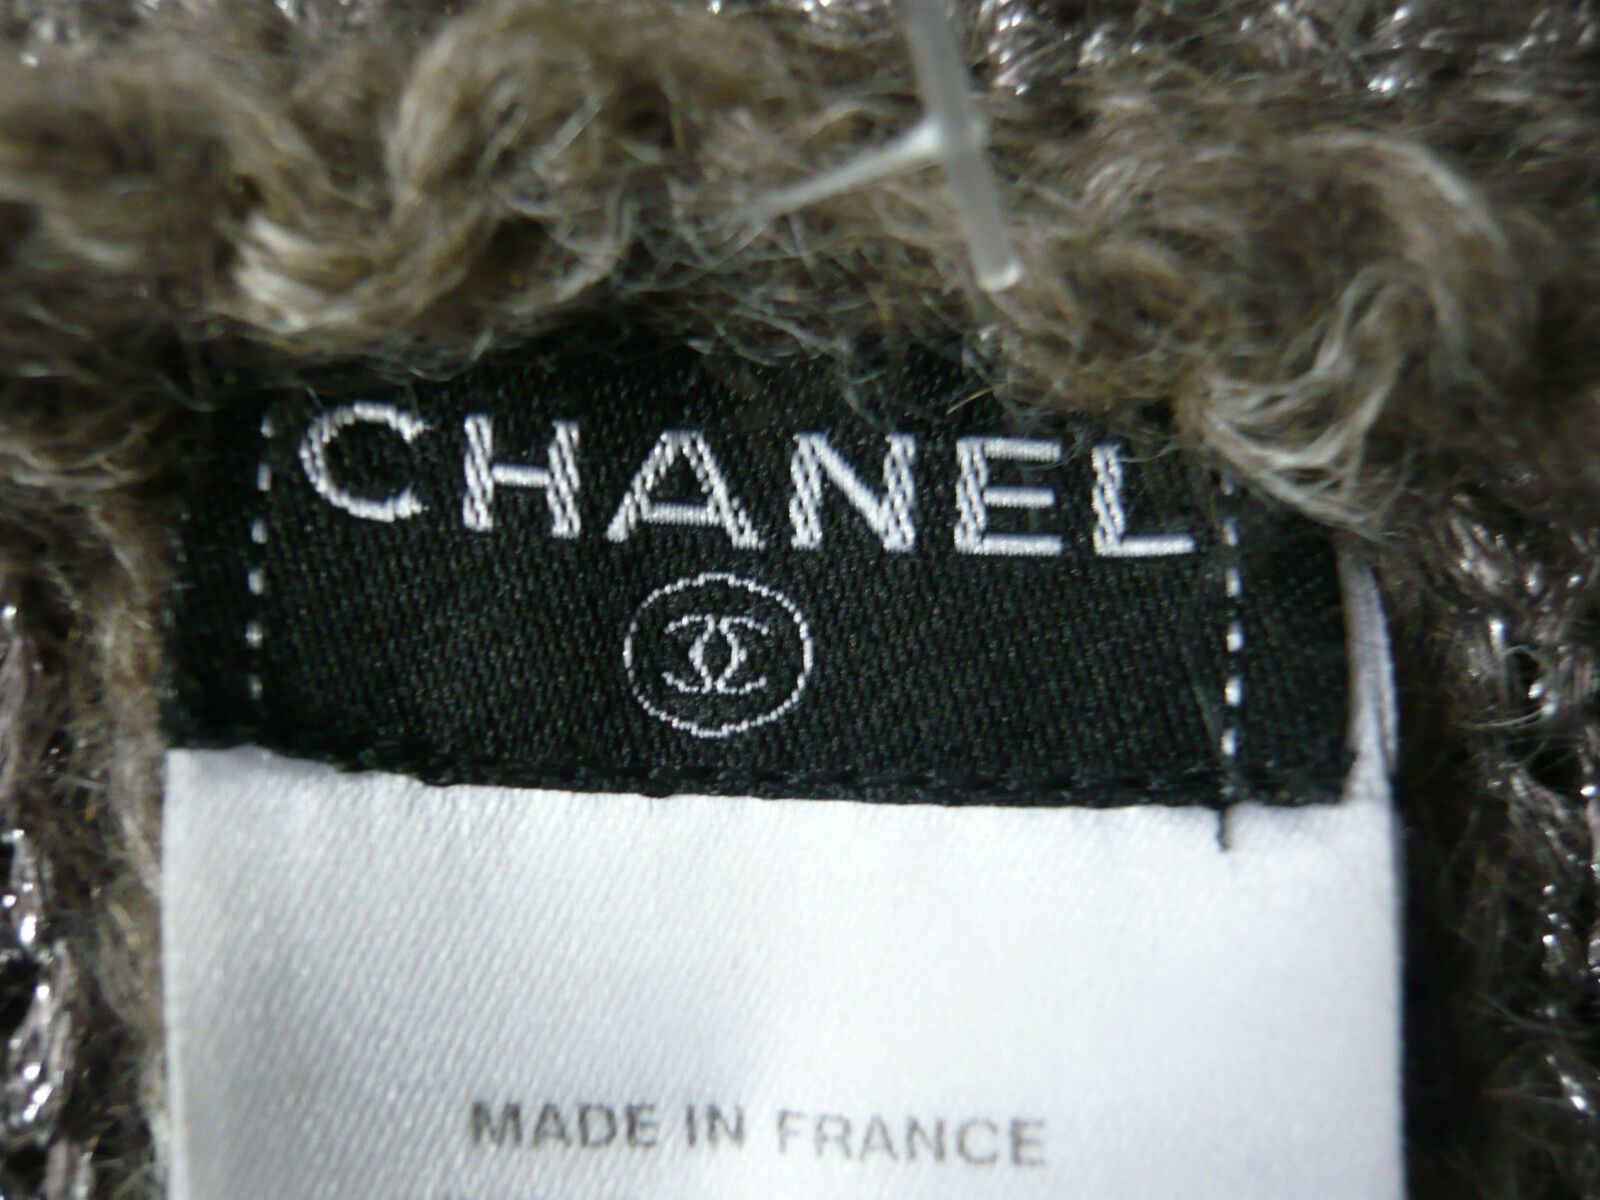 Chanel sublime veste mohair cardigan gilet sweater jacket knit